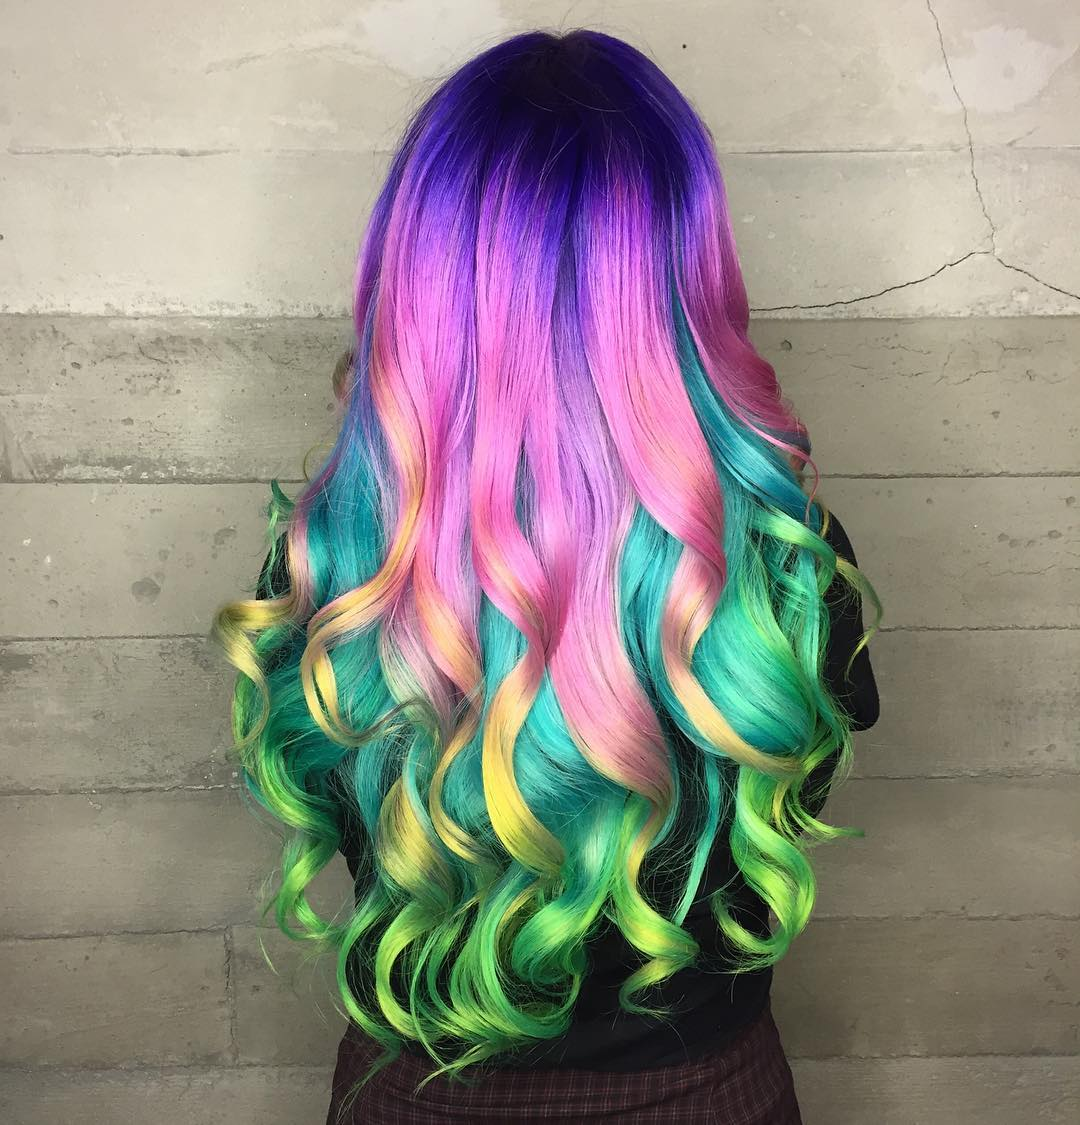 30 brightest pravana hair color ideas � every shade in the